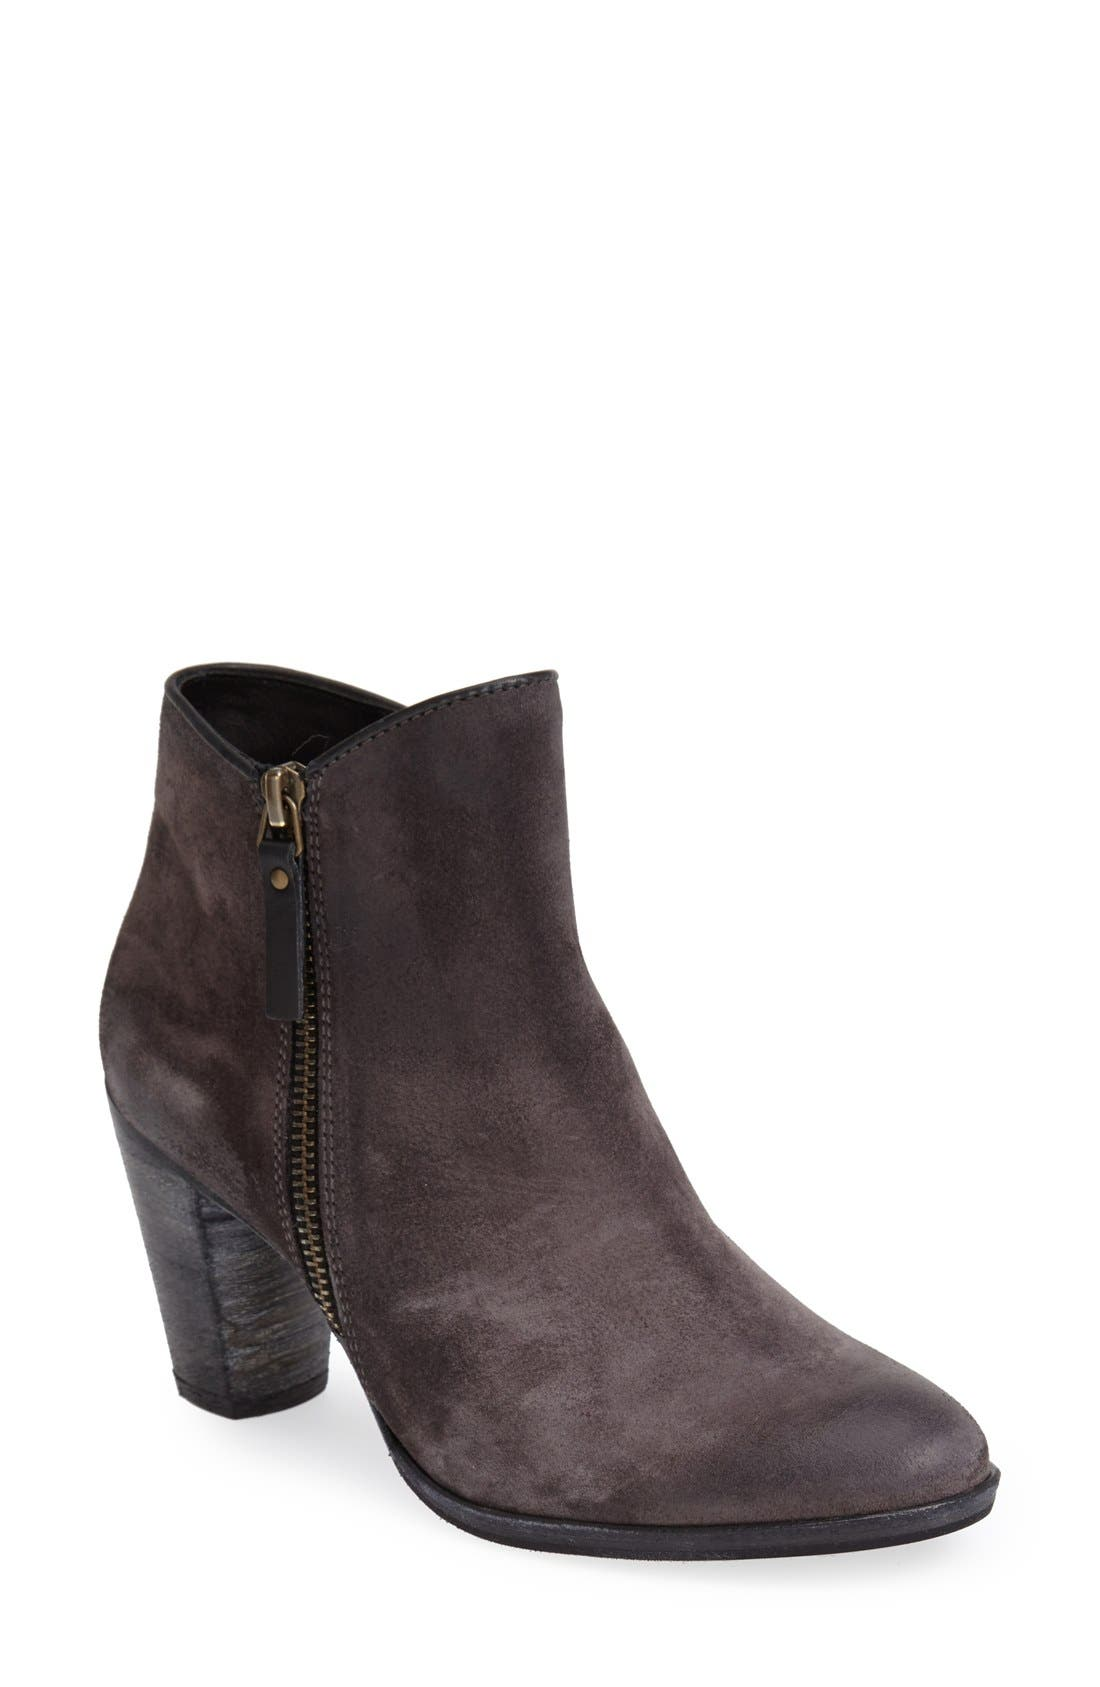 made by hand 'Snyder Rabat' Bootie,                             Main thumbnail 1, color,                             050